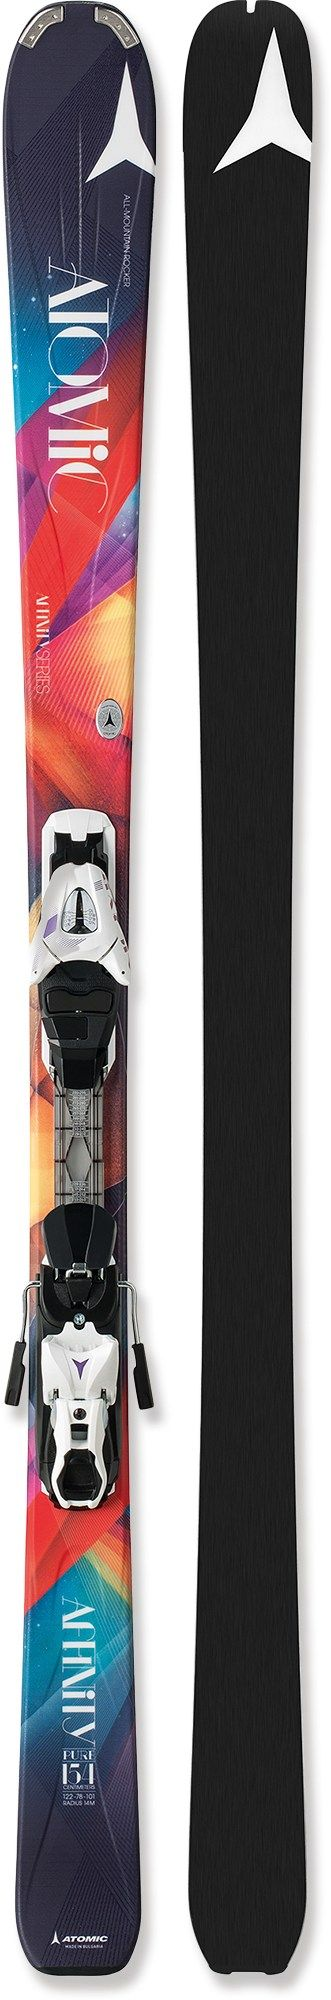 Atomic Female Affinity Pure Skis With Bindings - Women's